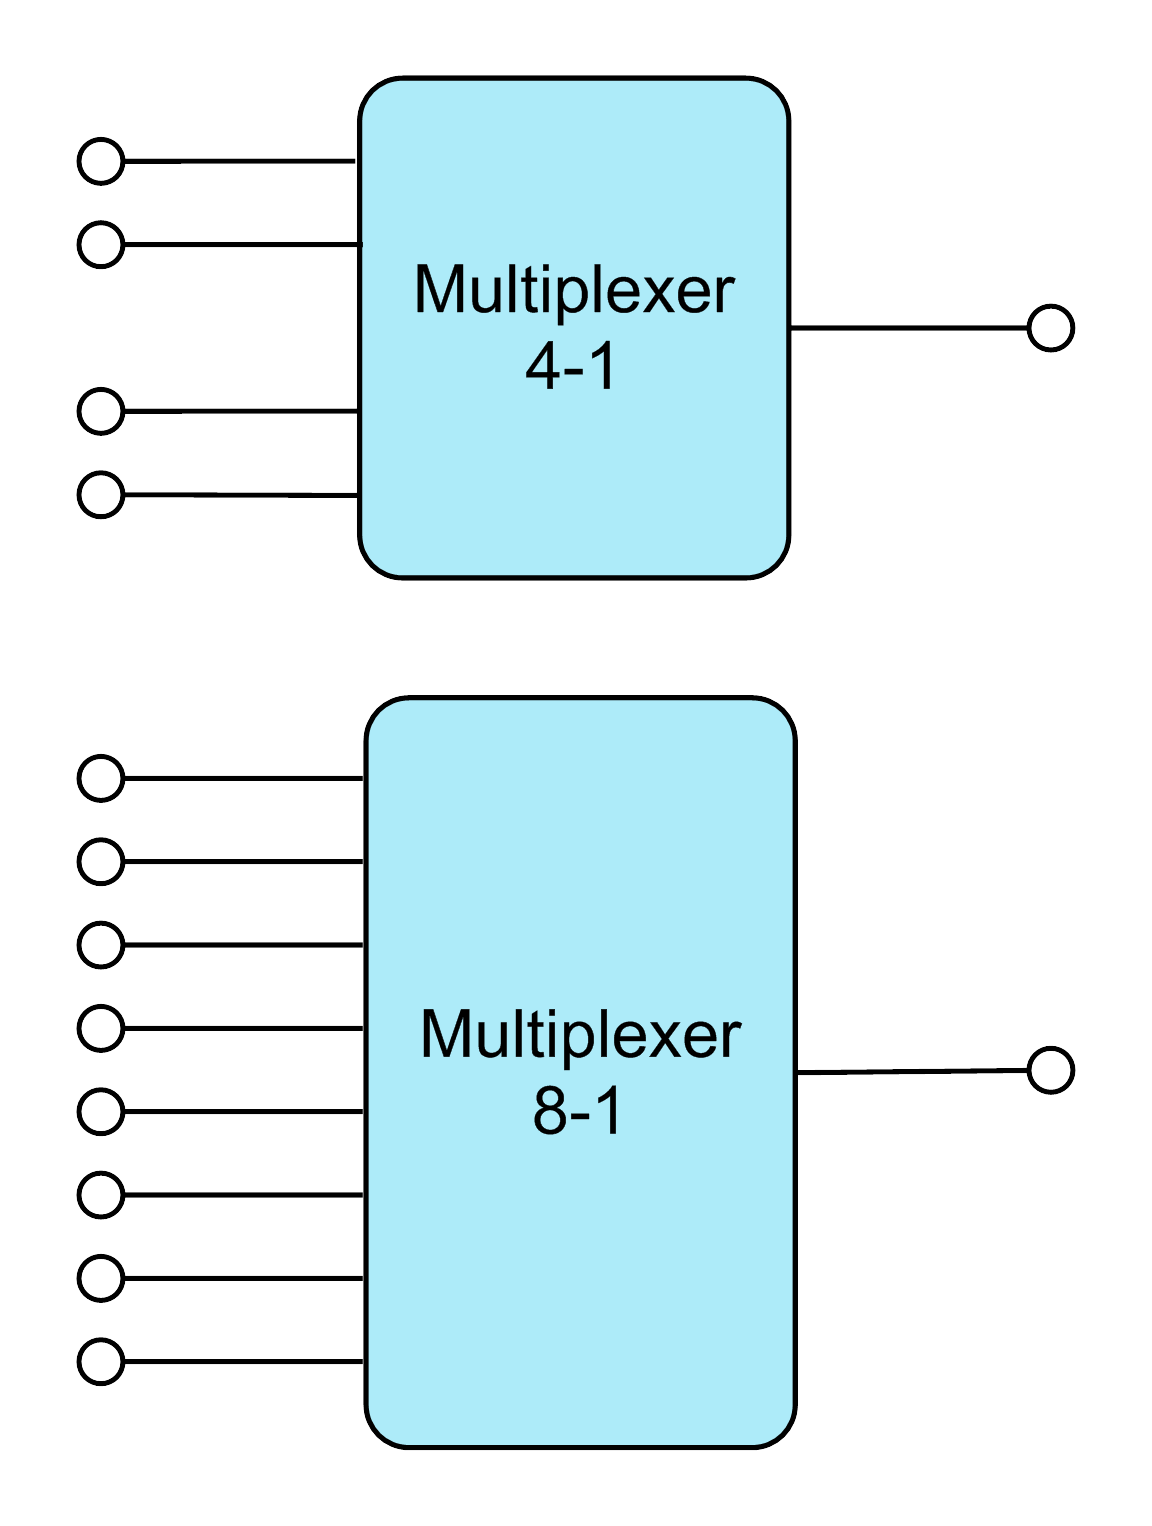 2 1 Mux Logic Diagram Electrical Wiring Diagrams For 8 Multiplexer Difference Between Multiplexing Demultiplexing Ahirlabs Barrel Shifter